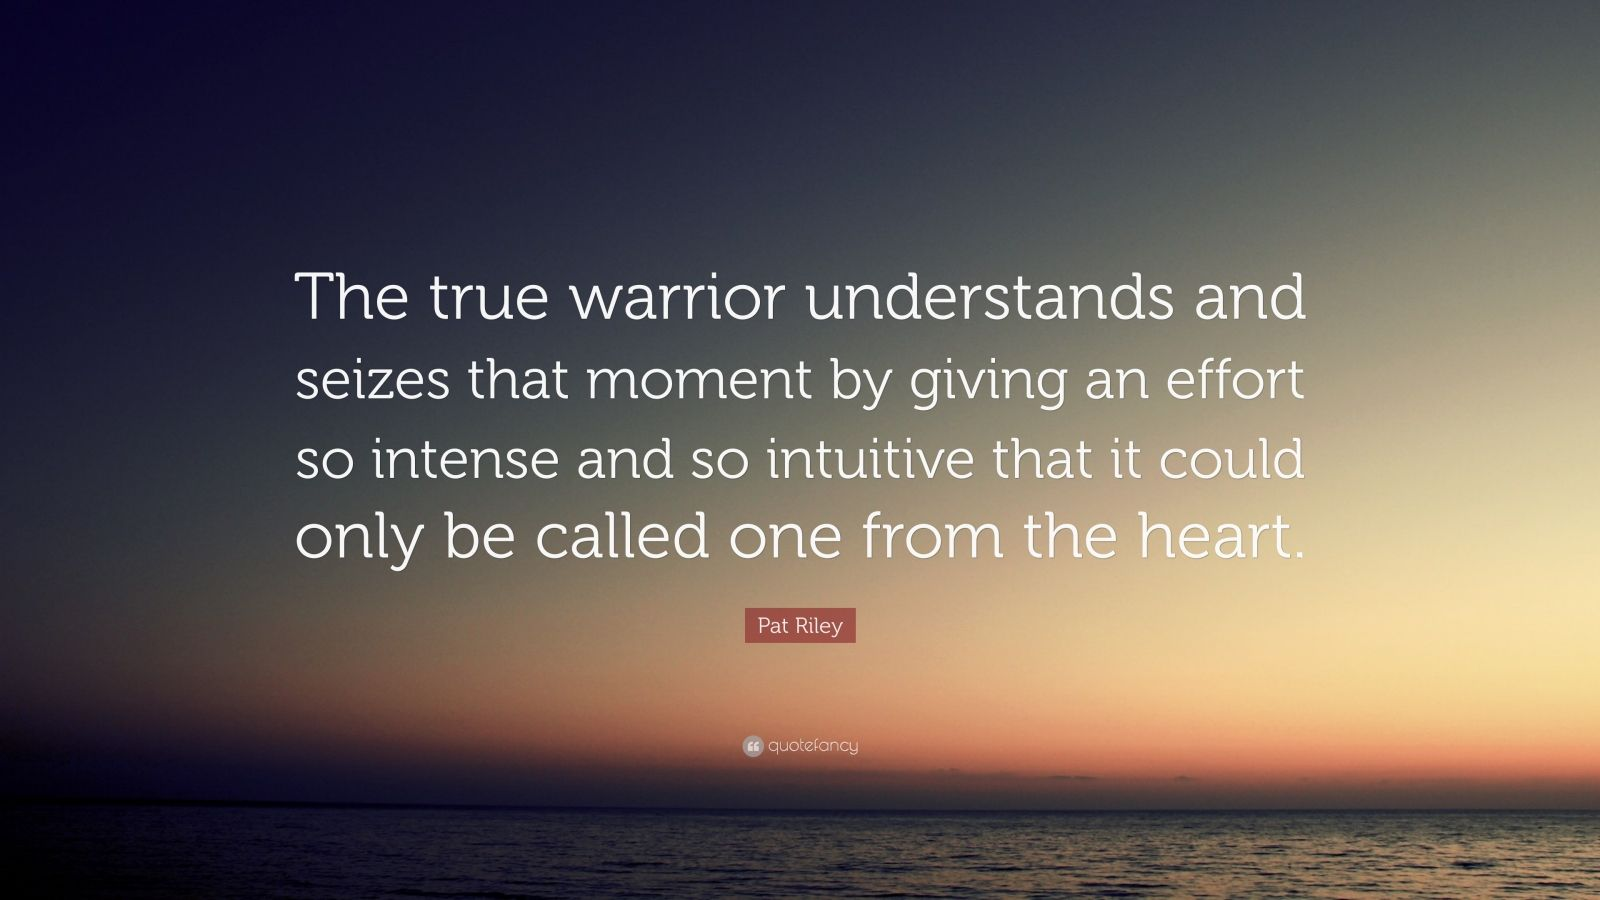 """Pat Riley Quote: """"The true warrior understands and seizes that moment by giving an effort so intense and so intuitive that it could only be called one from the heart."""""""